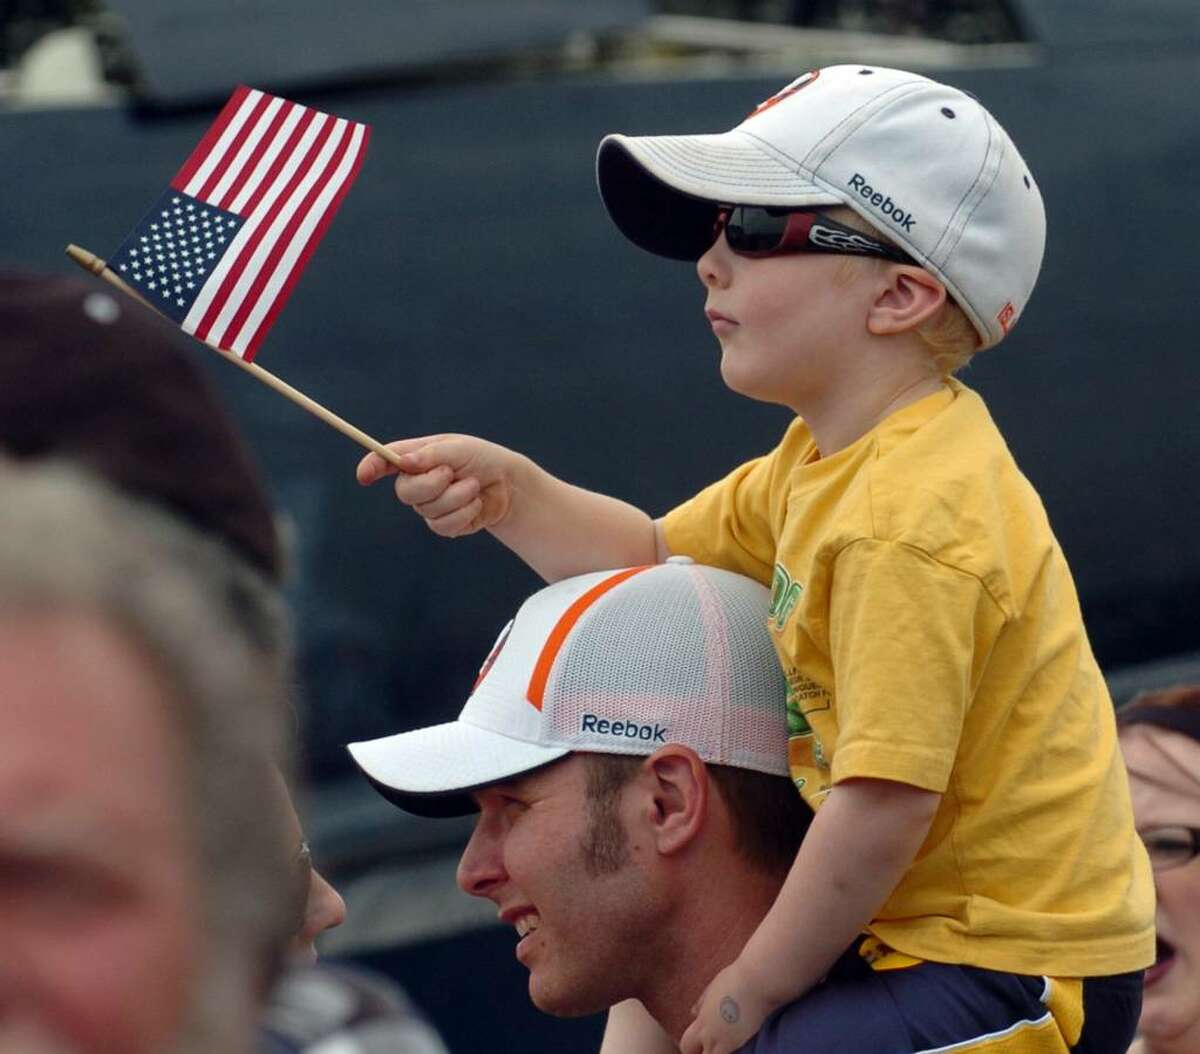 Aiden Courtney, of Bridgeport, waves the US flag while sitting atop his dad Chris' shoulders, during the Wings and Wheels 2010 car and air show at Sikorsky Memorial Airport in Stratford, Conn. on Saturday May 29, 2010.